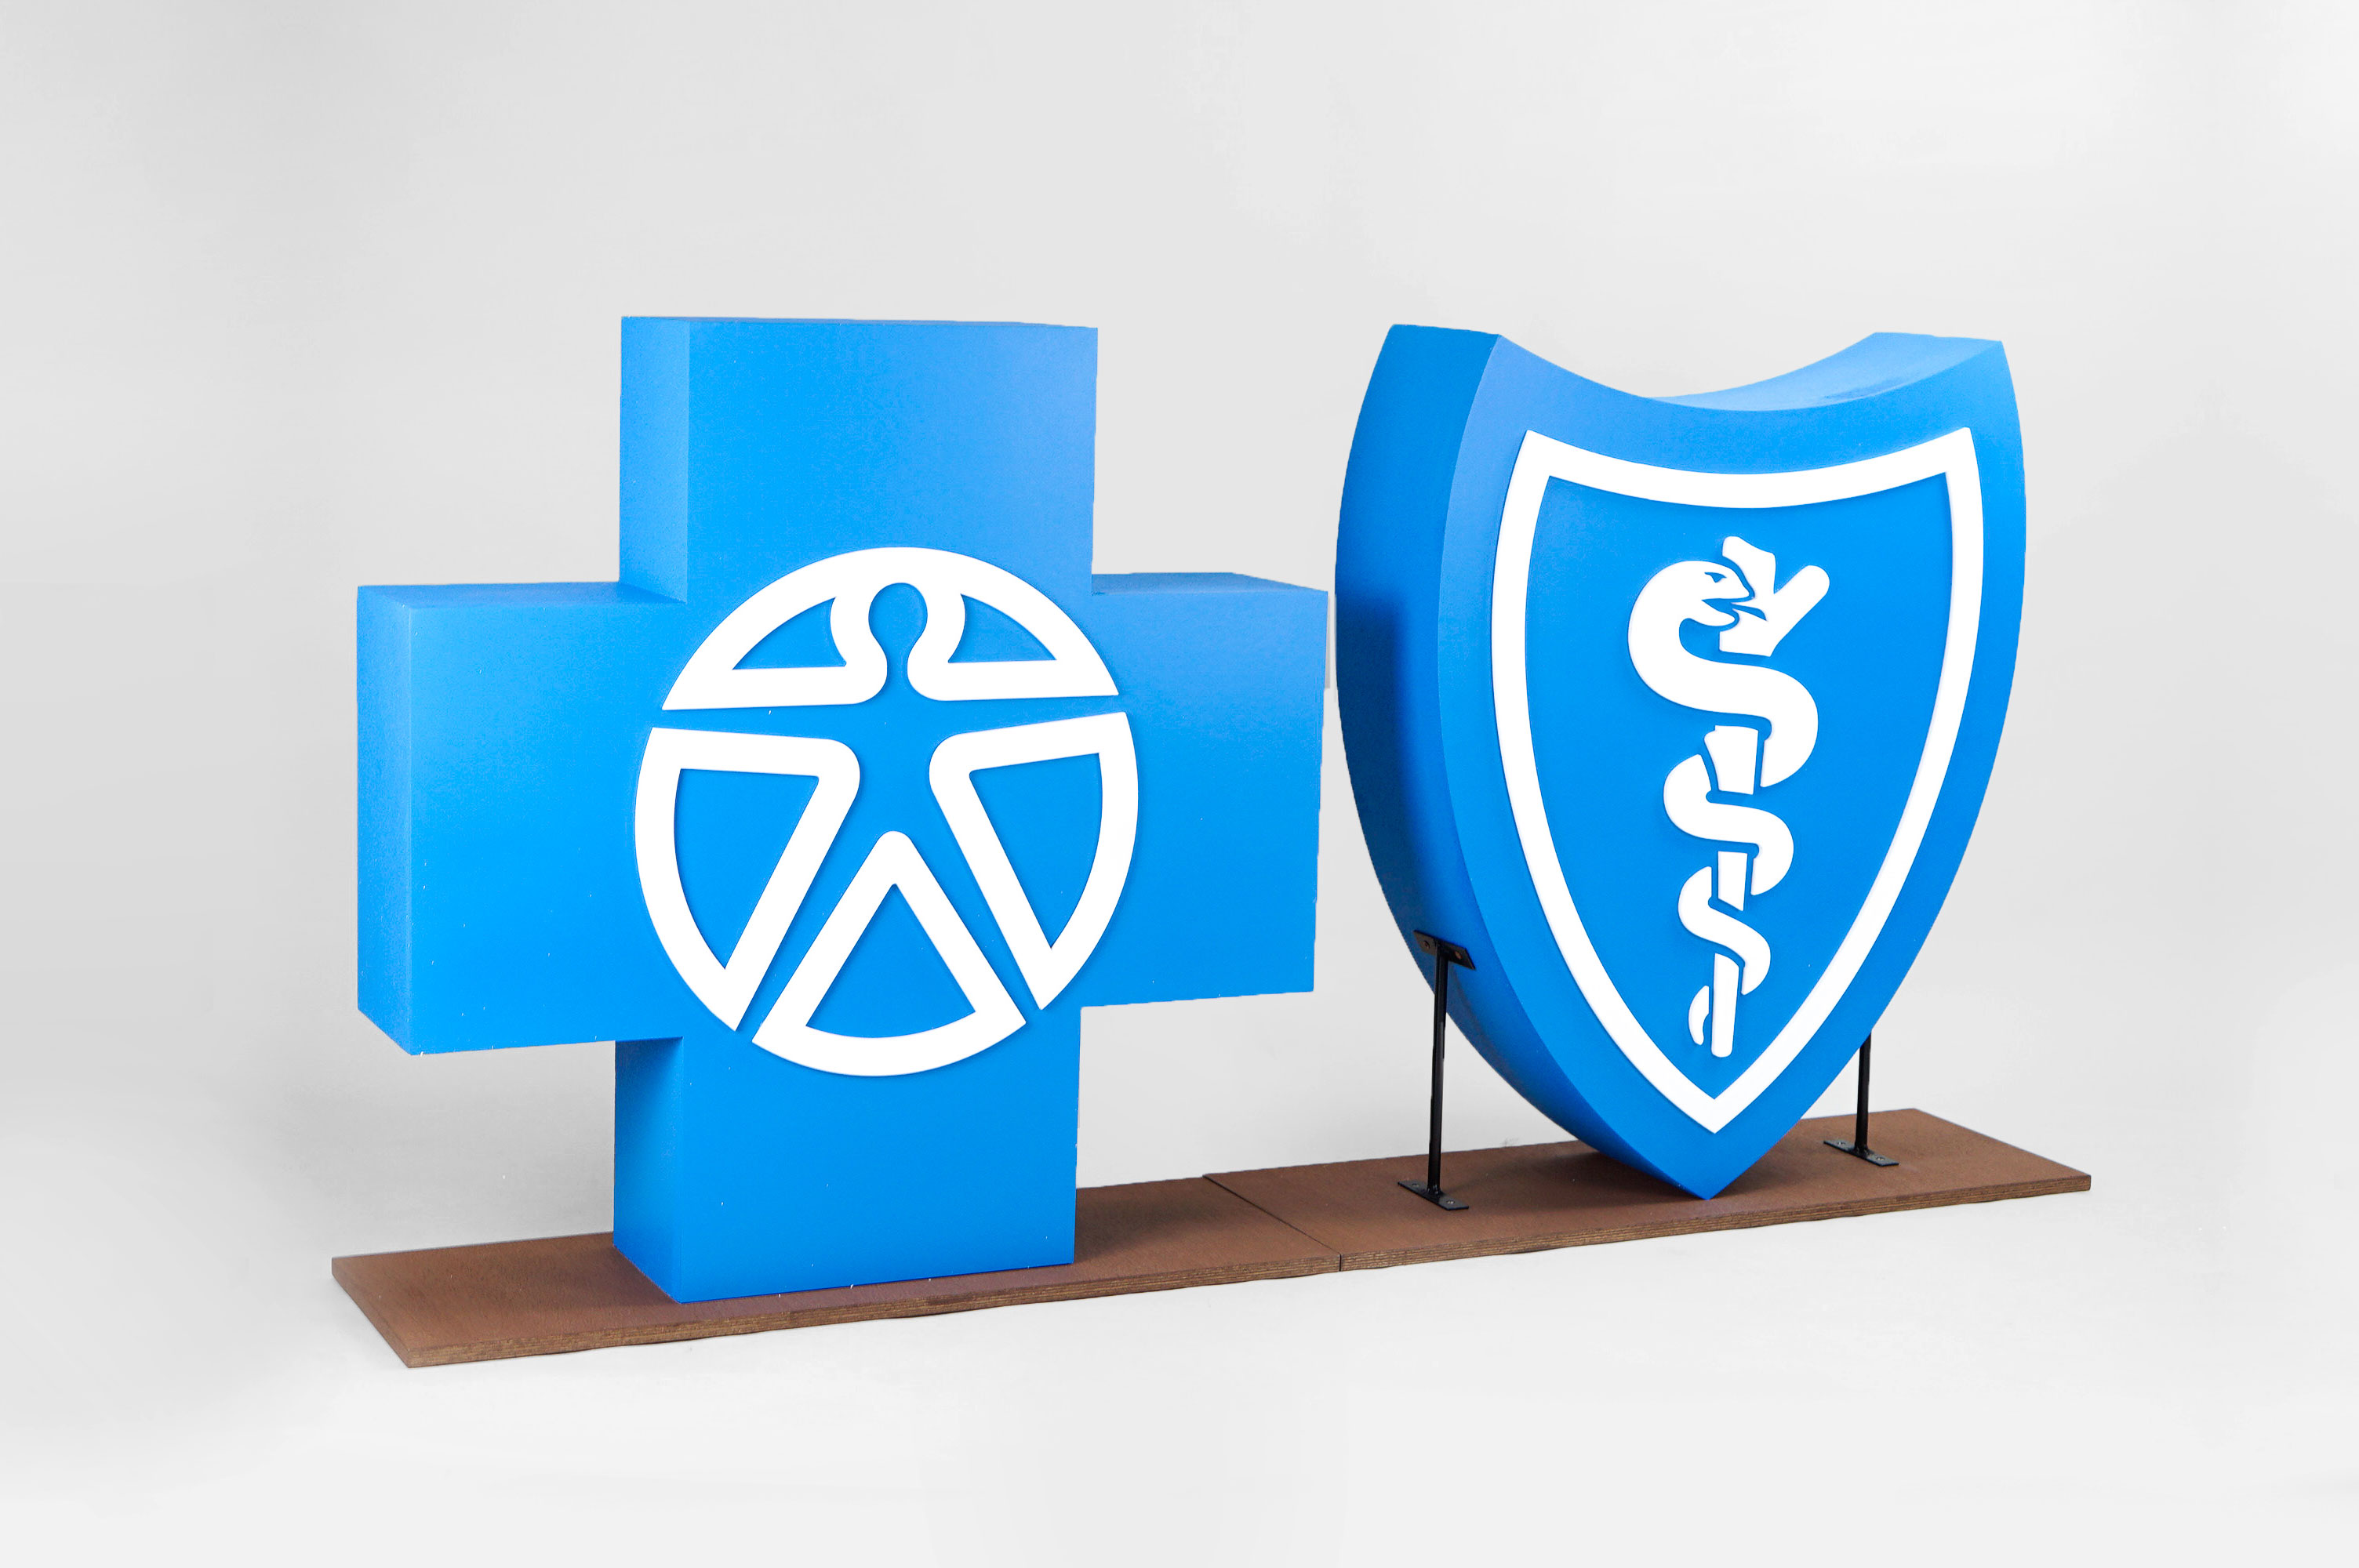 Large scale blue and white Blue Cross Blue Shield foam freestanding event logos for Aspen Event Works, a boutique event planning company specializing in creative and memorable event experiences.